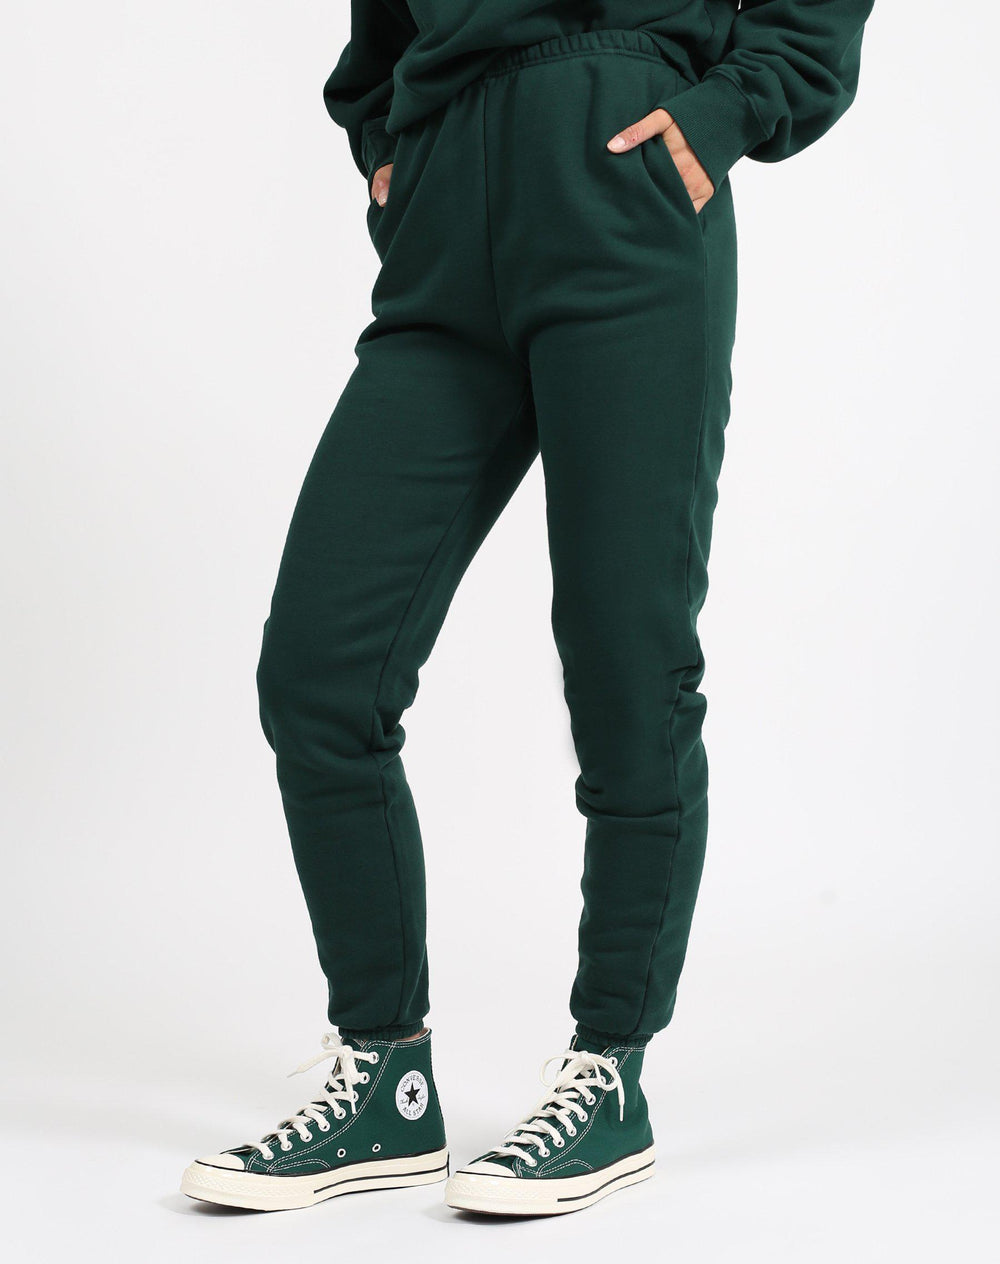 Brunette the Label Best Friend High Rise Jogger in Evergreen-The Trendy Walrus